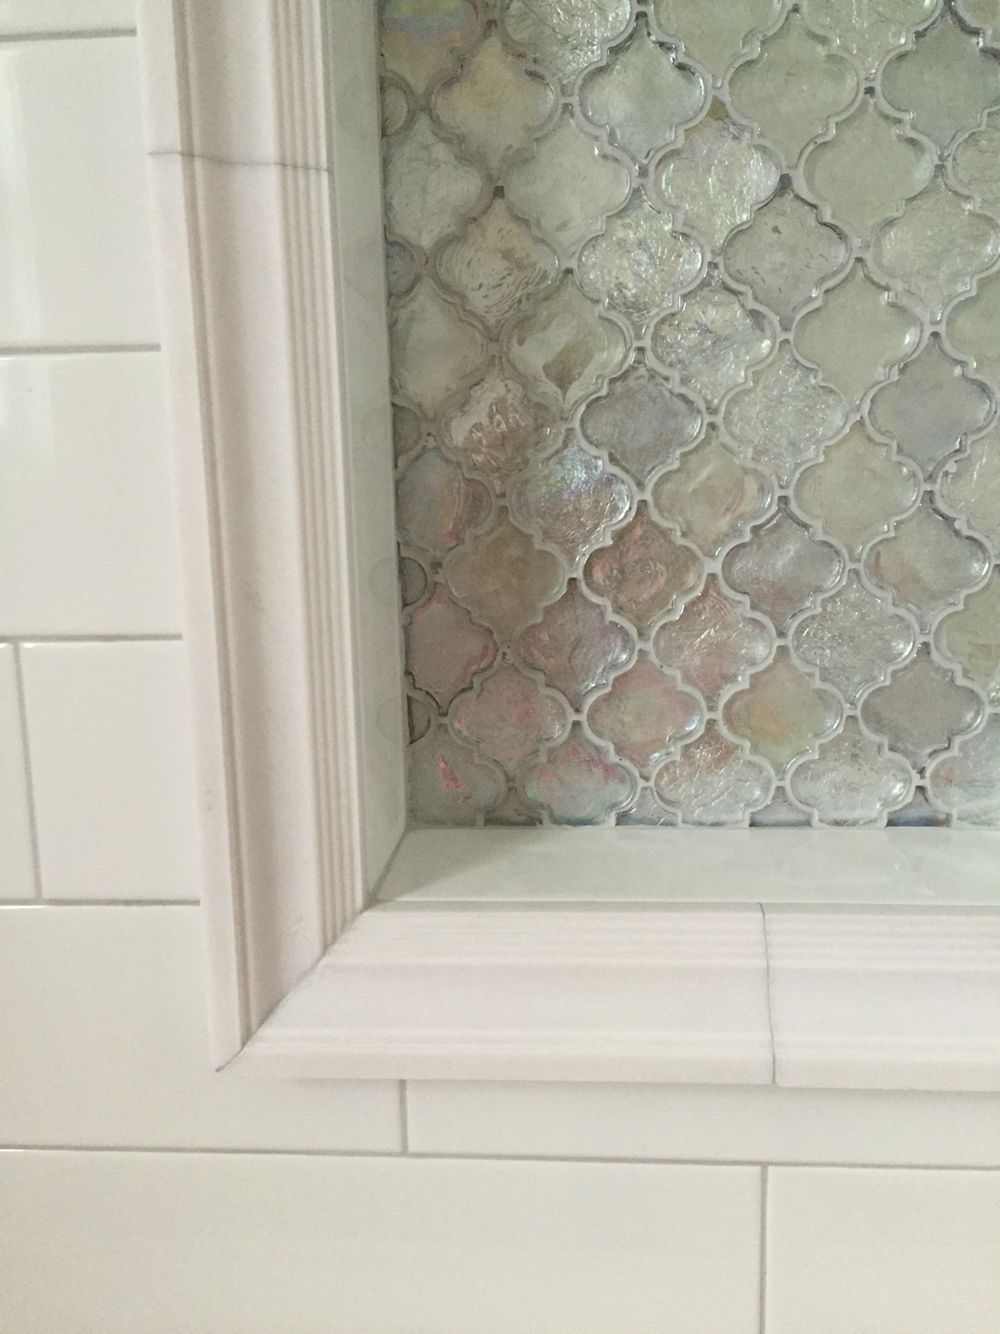 Shower Niche White Subway Tile Metallic Arabesque Tile Framed - Metallic bathroom tiles